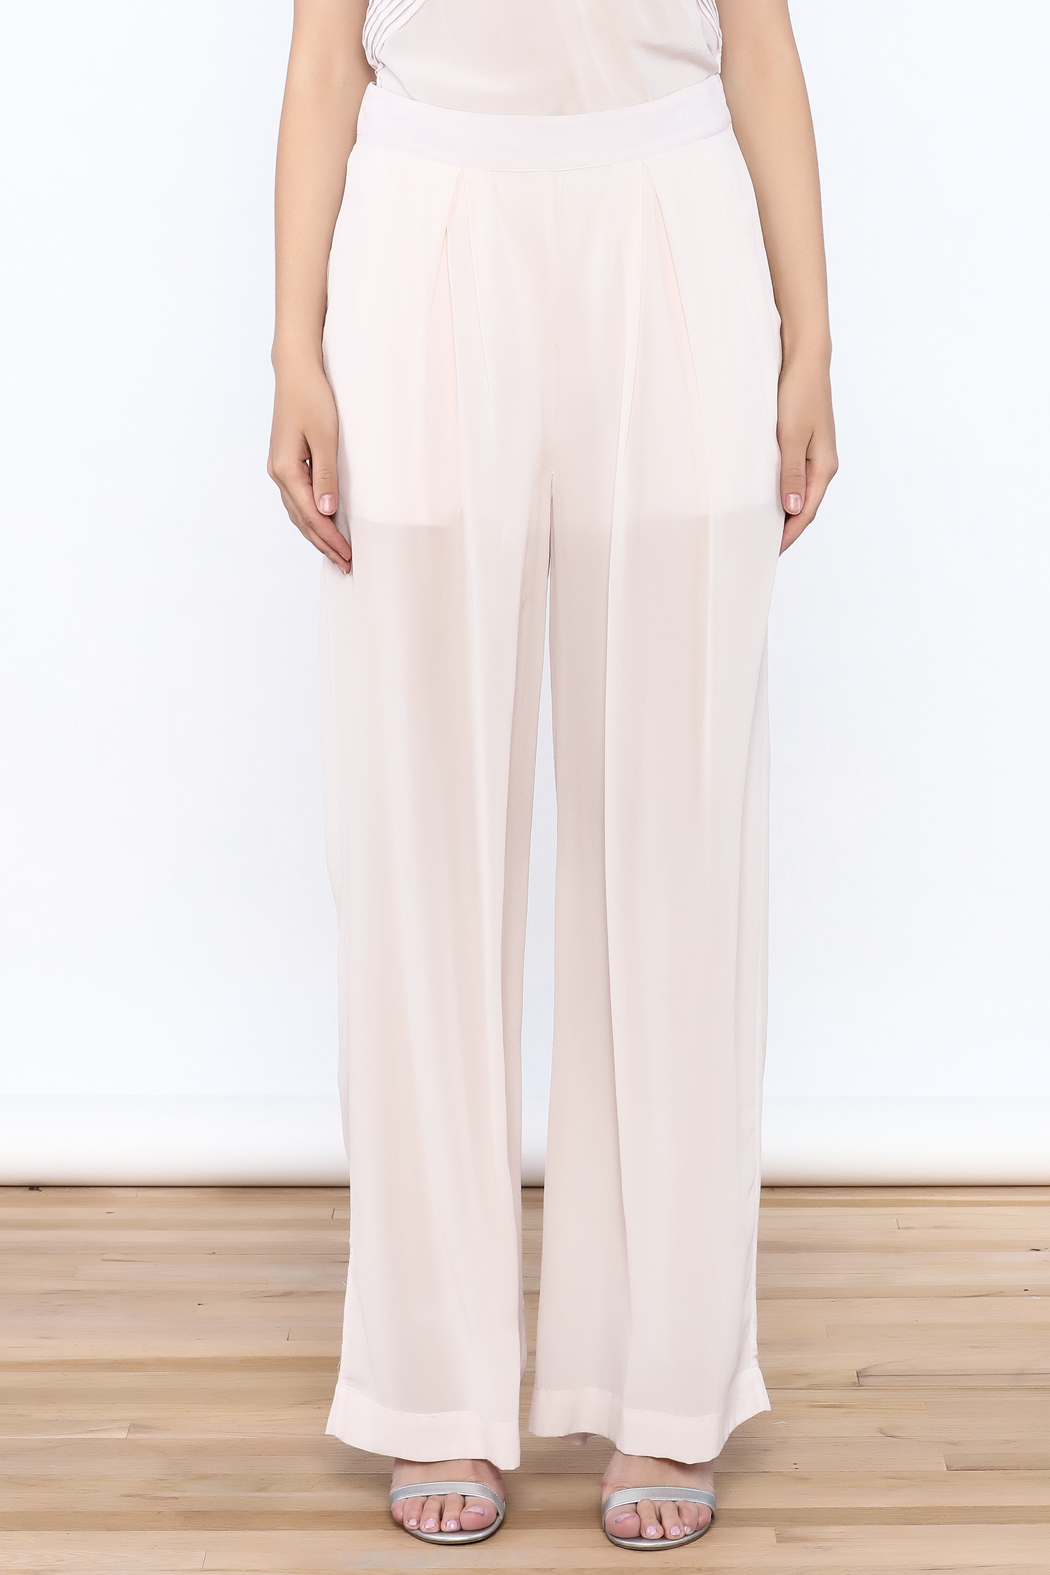 New Friends Colony Eloise Sheer Pants - Side Cropped Image